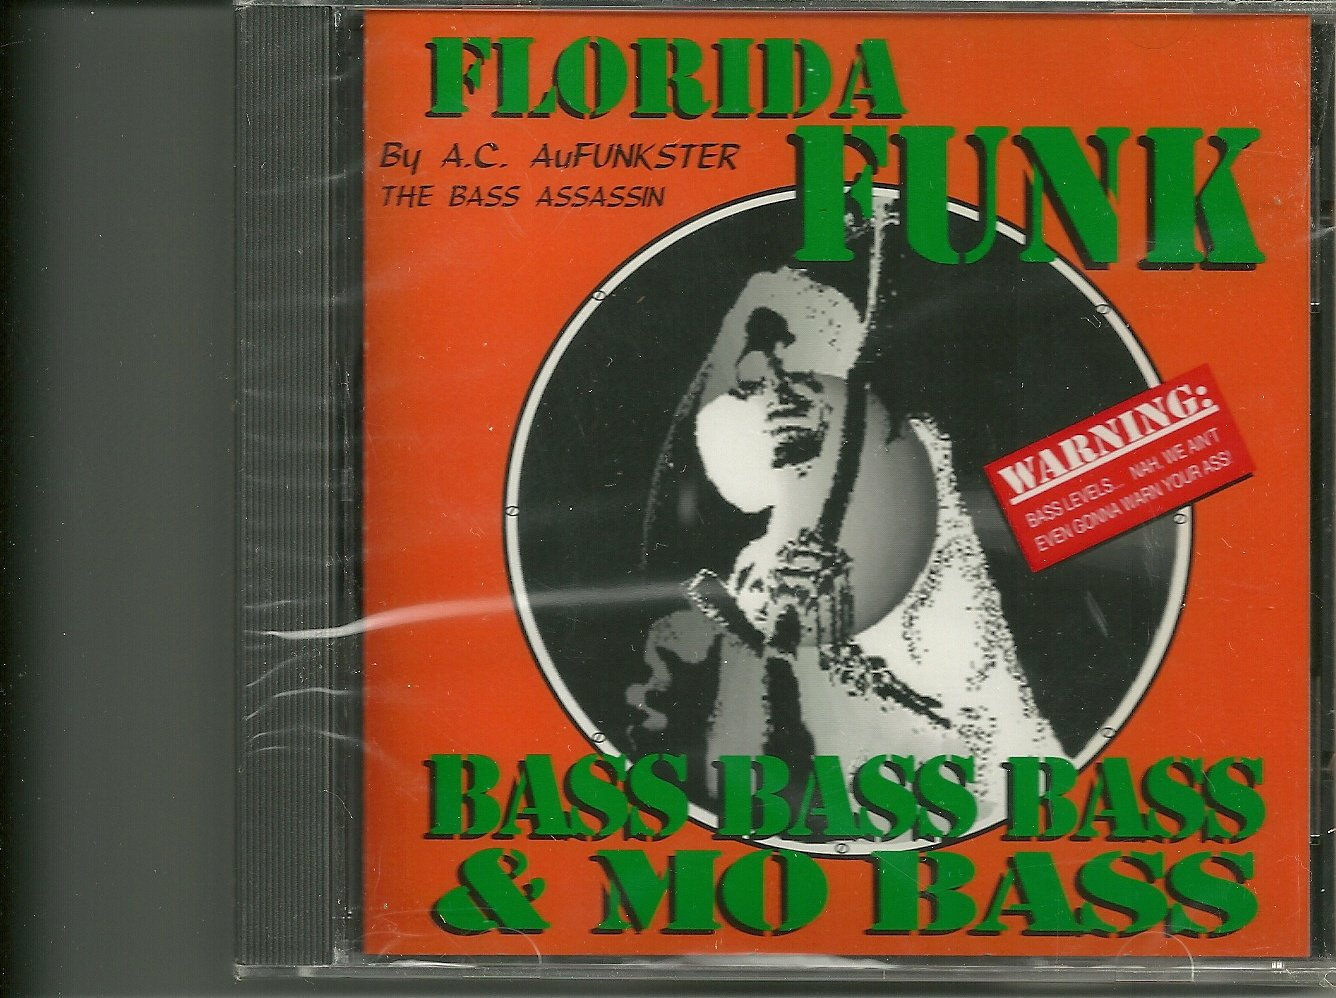 Florida Funk: Selling rankings Bass Safety and trust